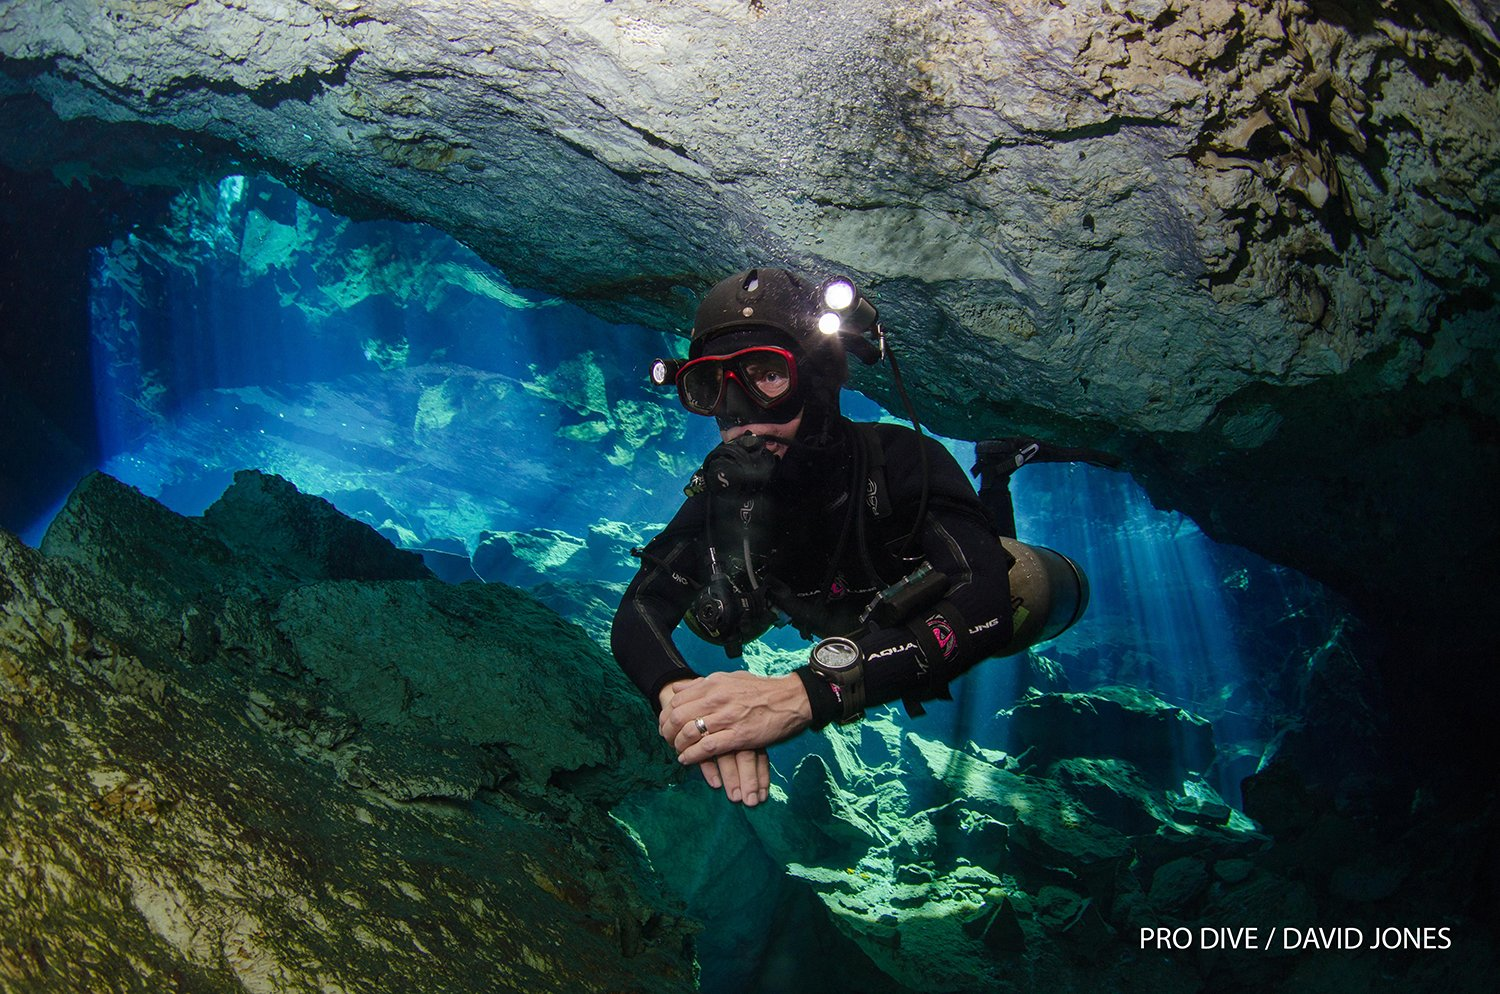 DIVE IN MEXICAN CENOTES! HOT STAY&DIVE DEAL! 5